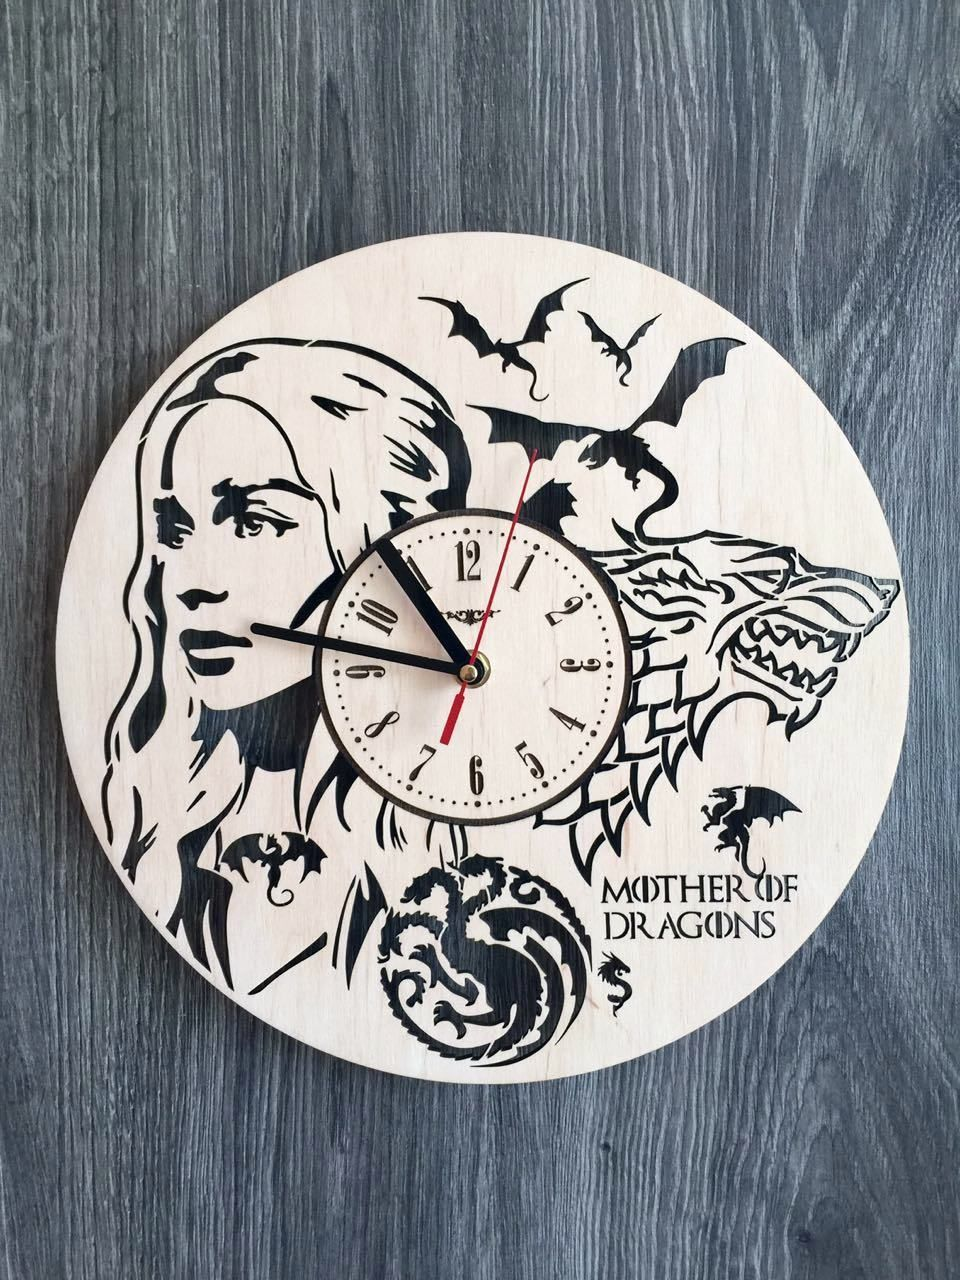 Game If Thrones Wood Wall Clock $31.99 Size   12 In / 30 Cm Really Cool